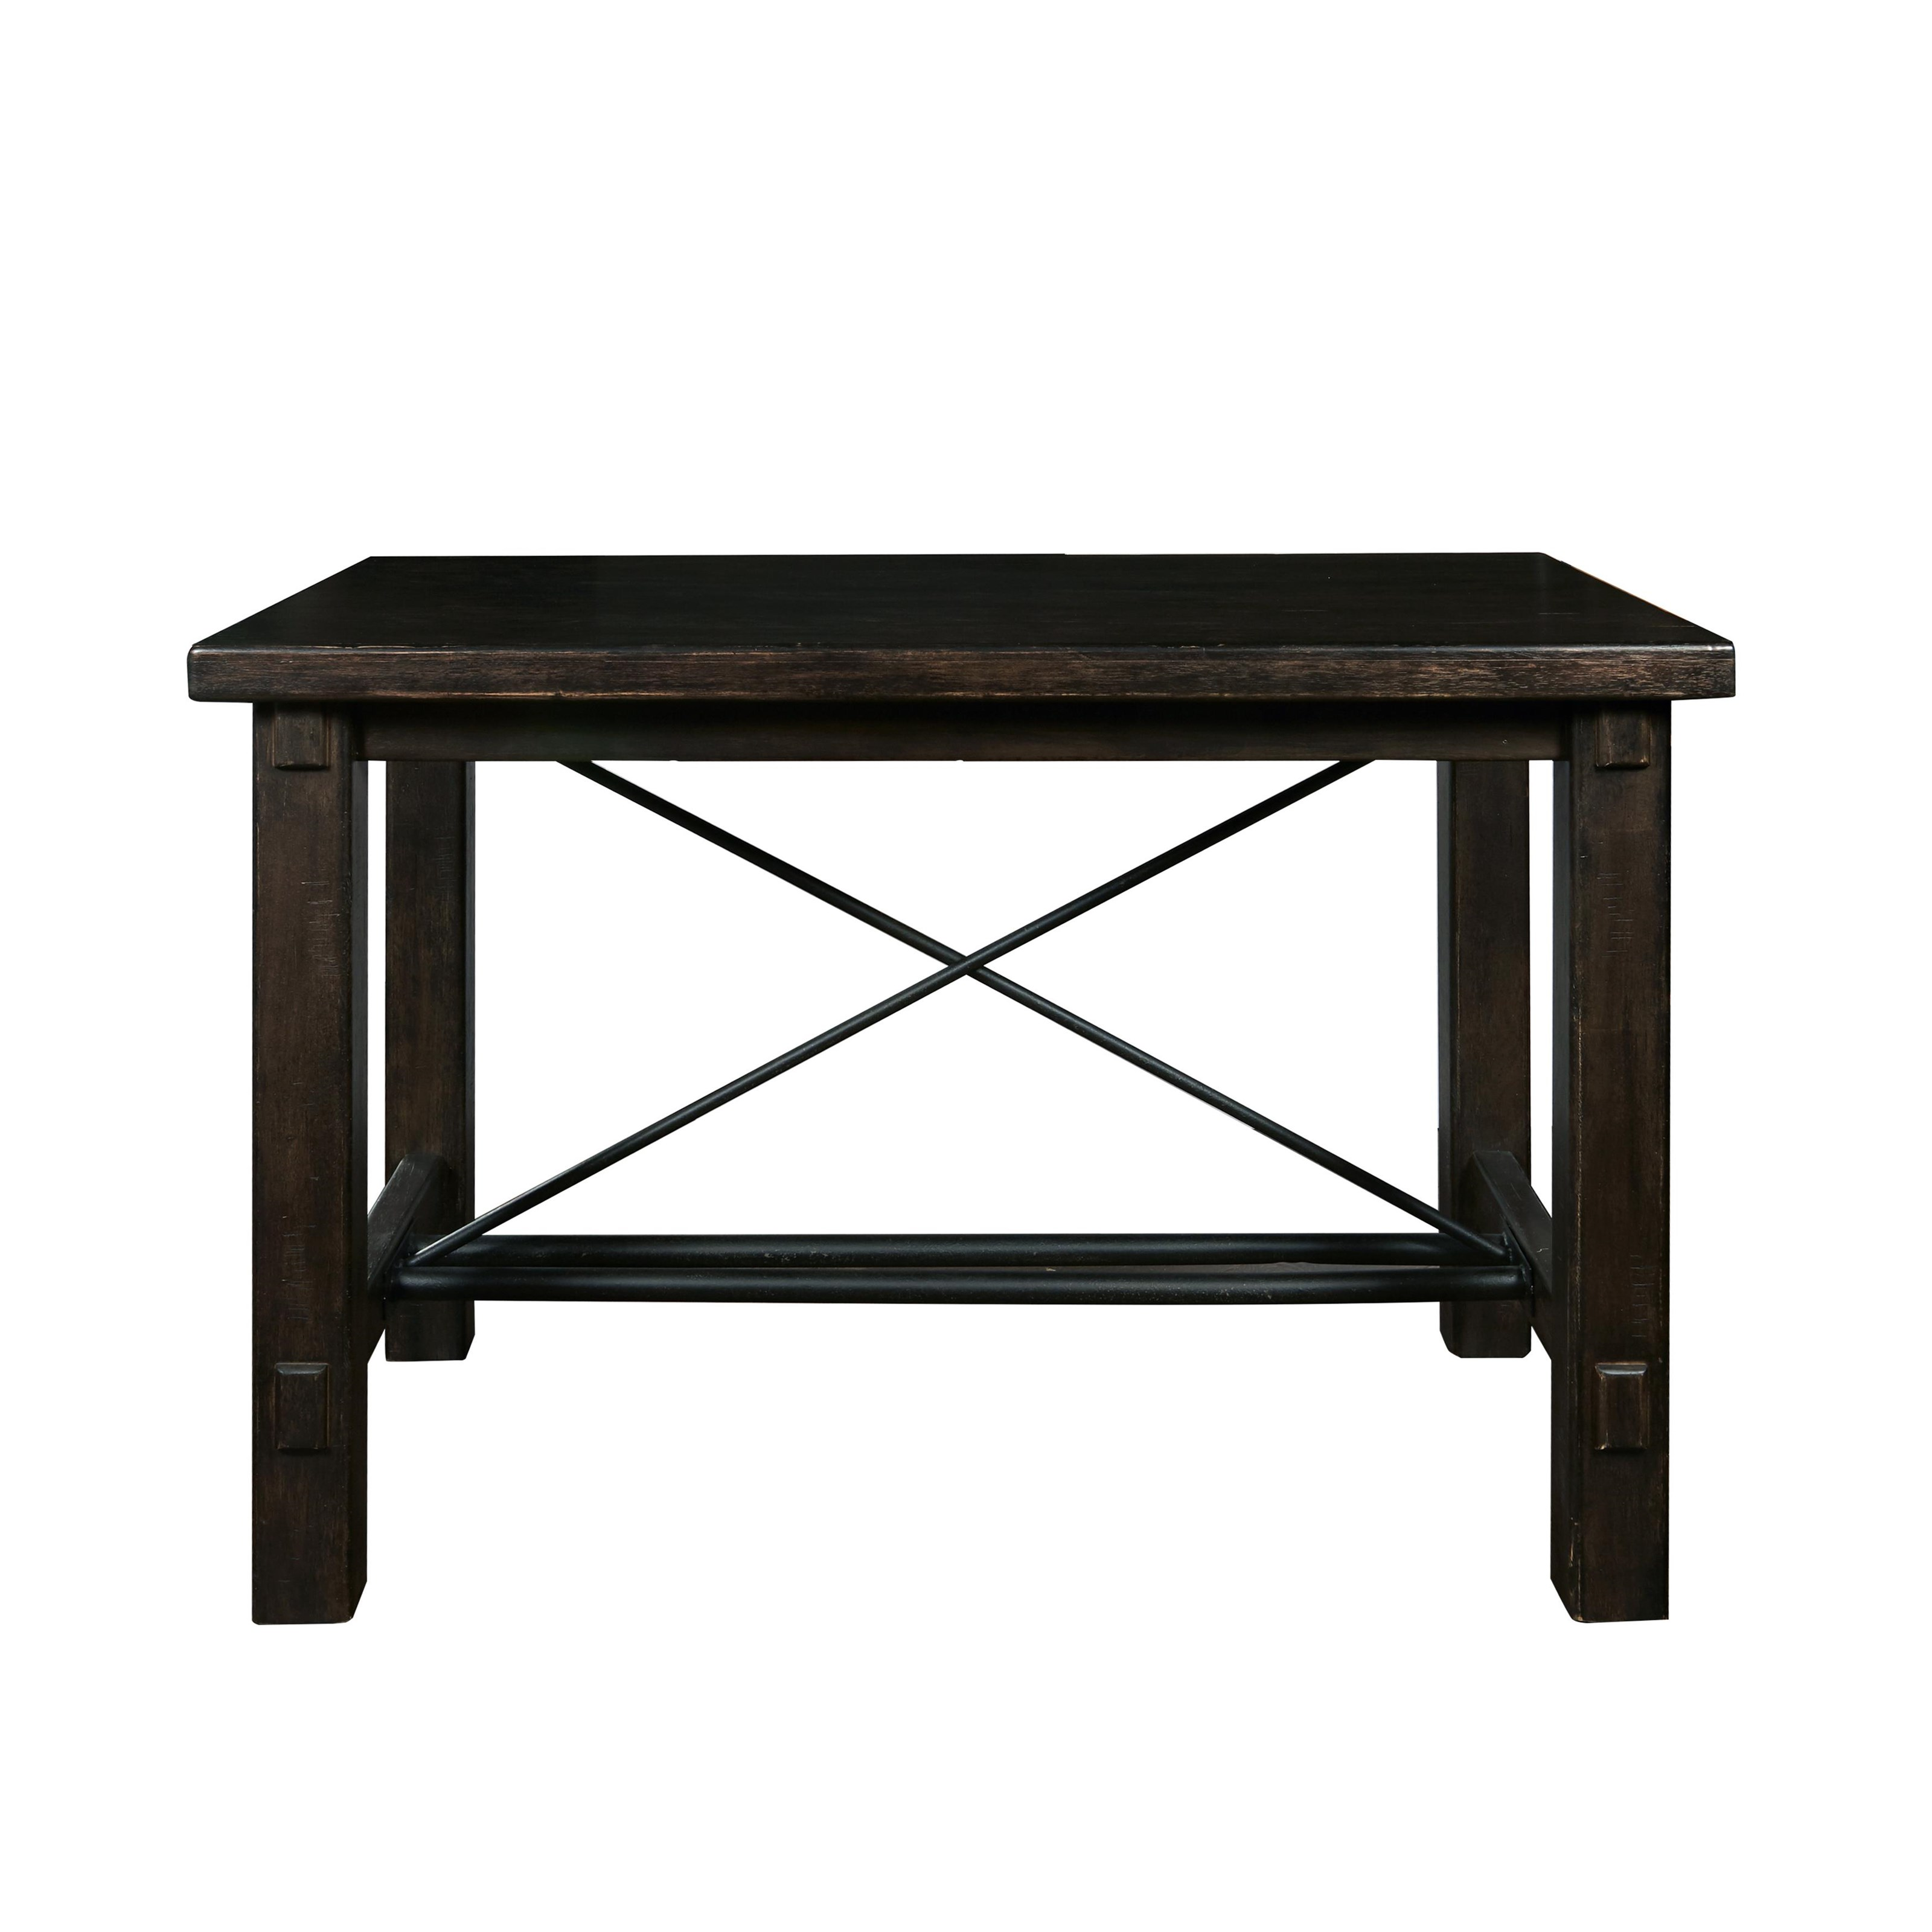 Beilsteine bar table morris home pub tables Morris home furniture outlet